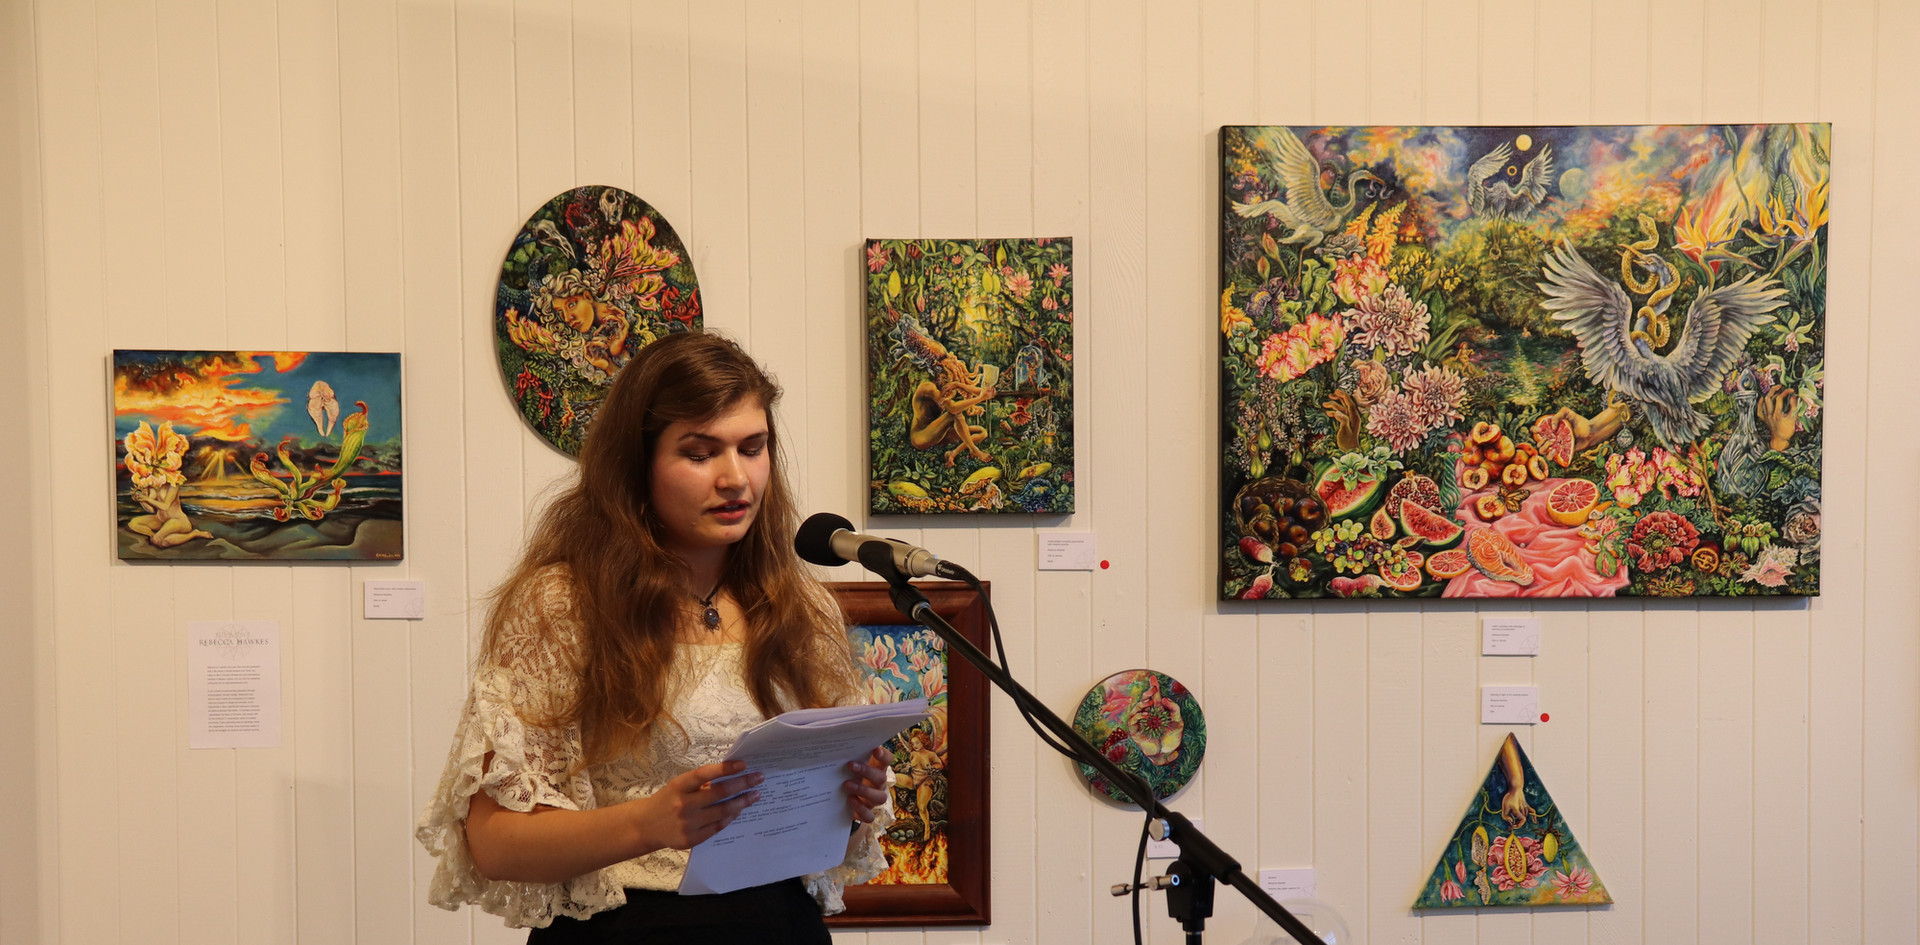 Reading at Potocki Paterson Gallery